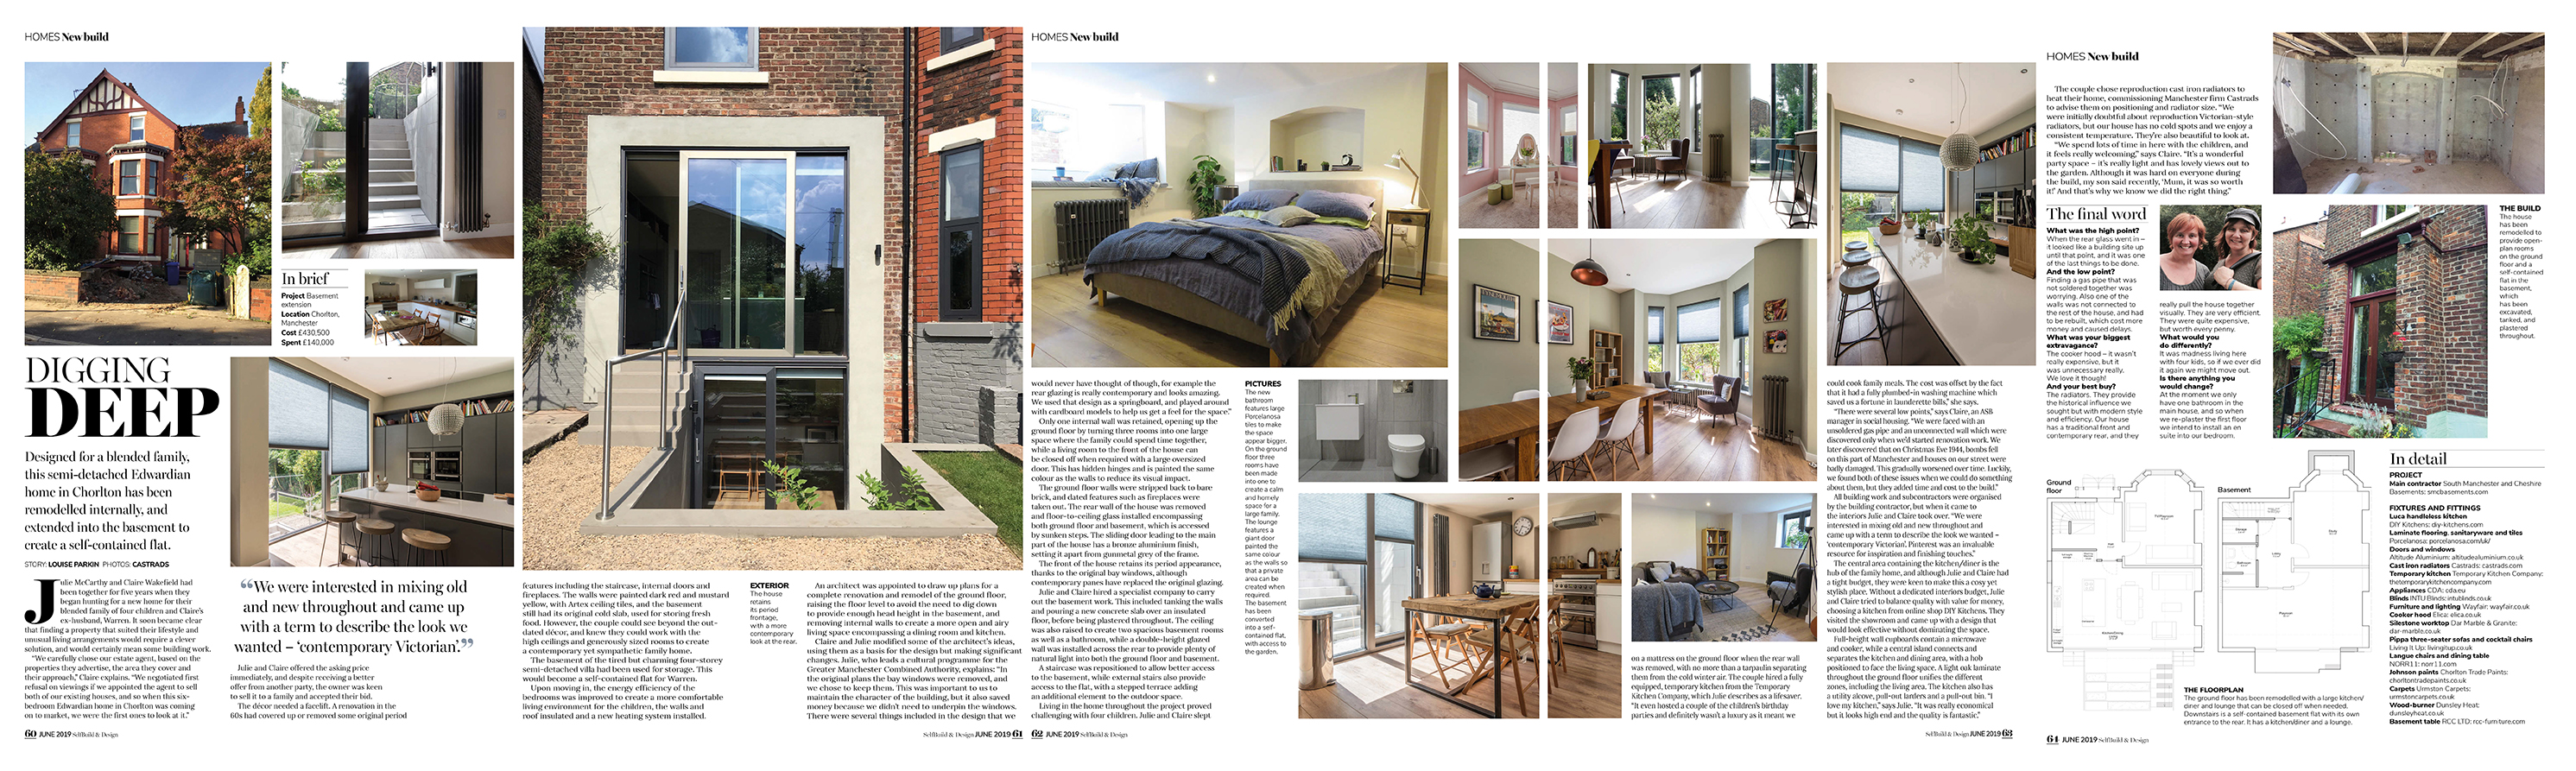 SelfBuild & Design, June 2019. A case study involving a modern family renovating a Victorian semi detached property in Manchester to incorporate a basement apartment and a family home above. Bringing the outside in with a glass wall from basement to first floor at the rear of the home.